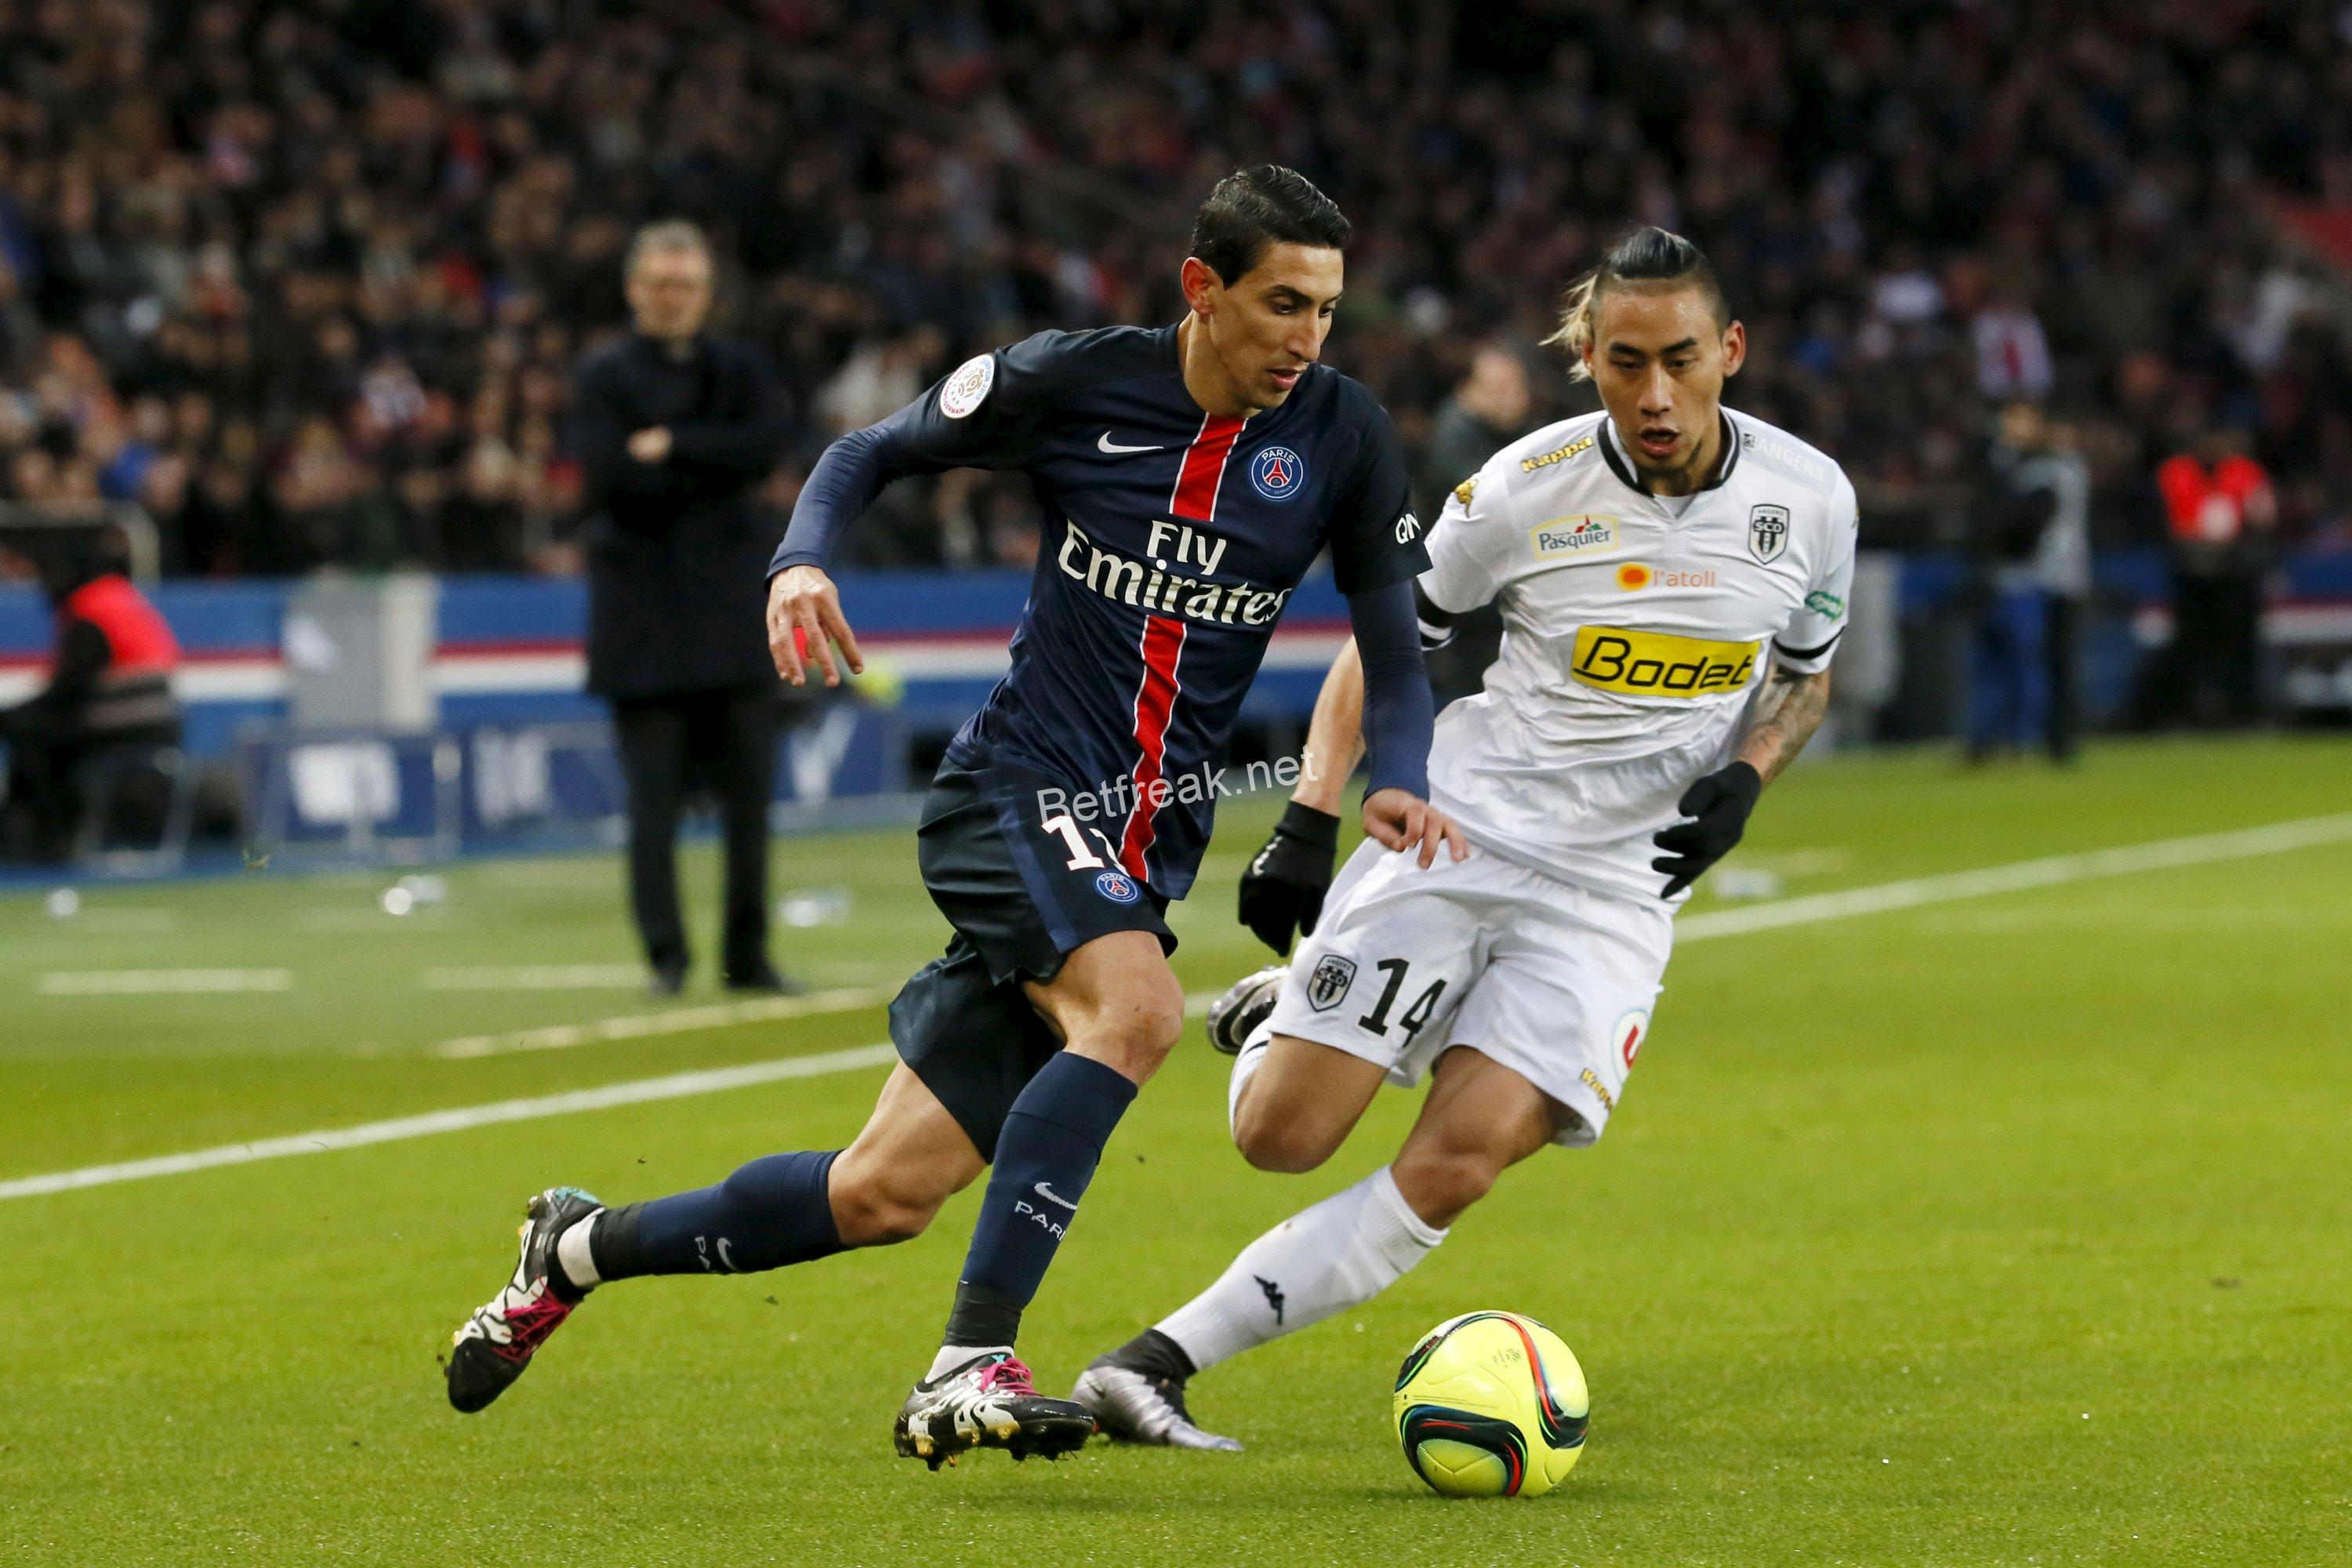 Angers psg betting previews betting assistant wmc 1.2 download skype